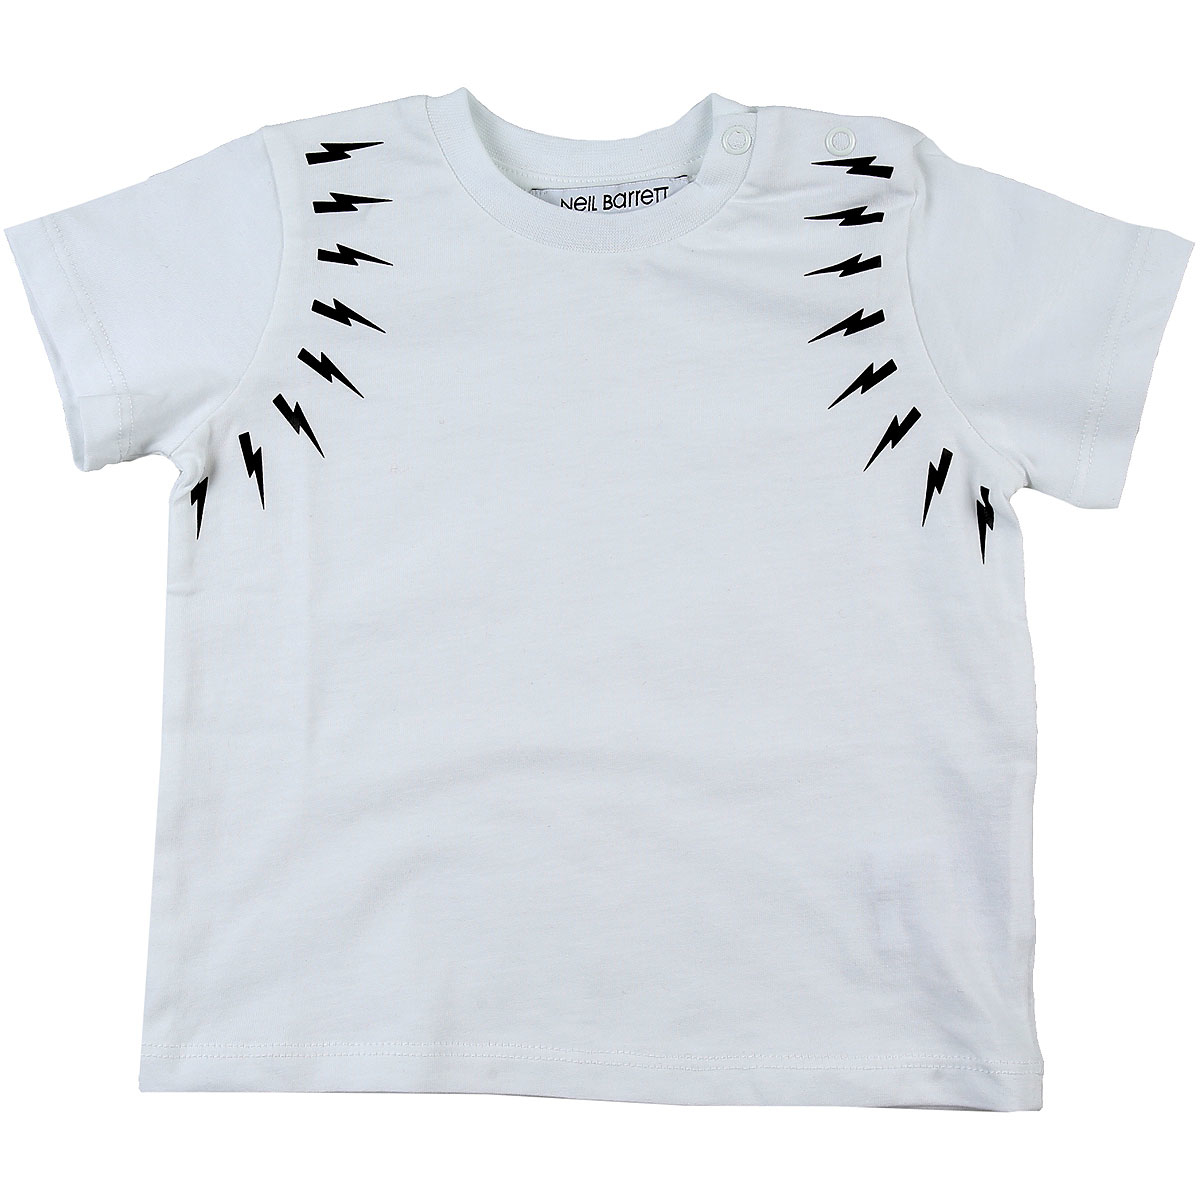 Neil Barrett Baby T-Shirt for Boys On Sale White DK - GOOFASH - Mens T-SHIRTS